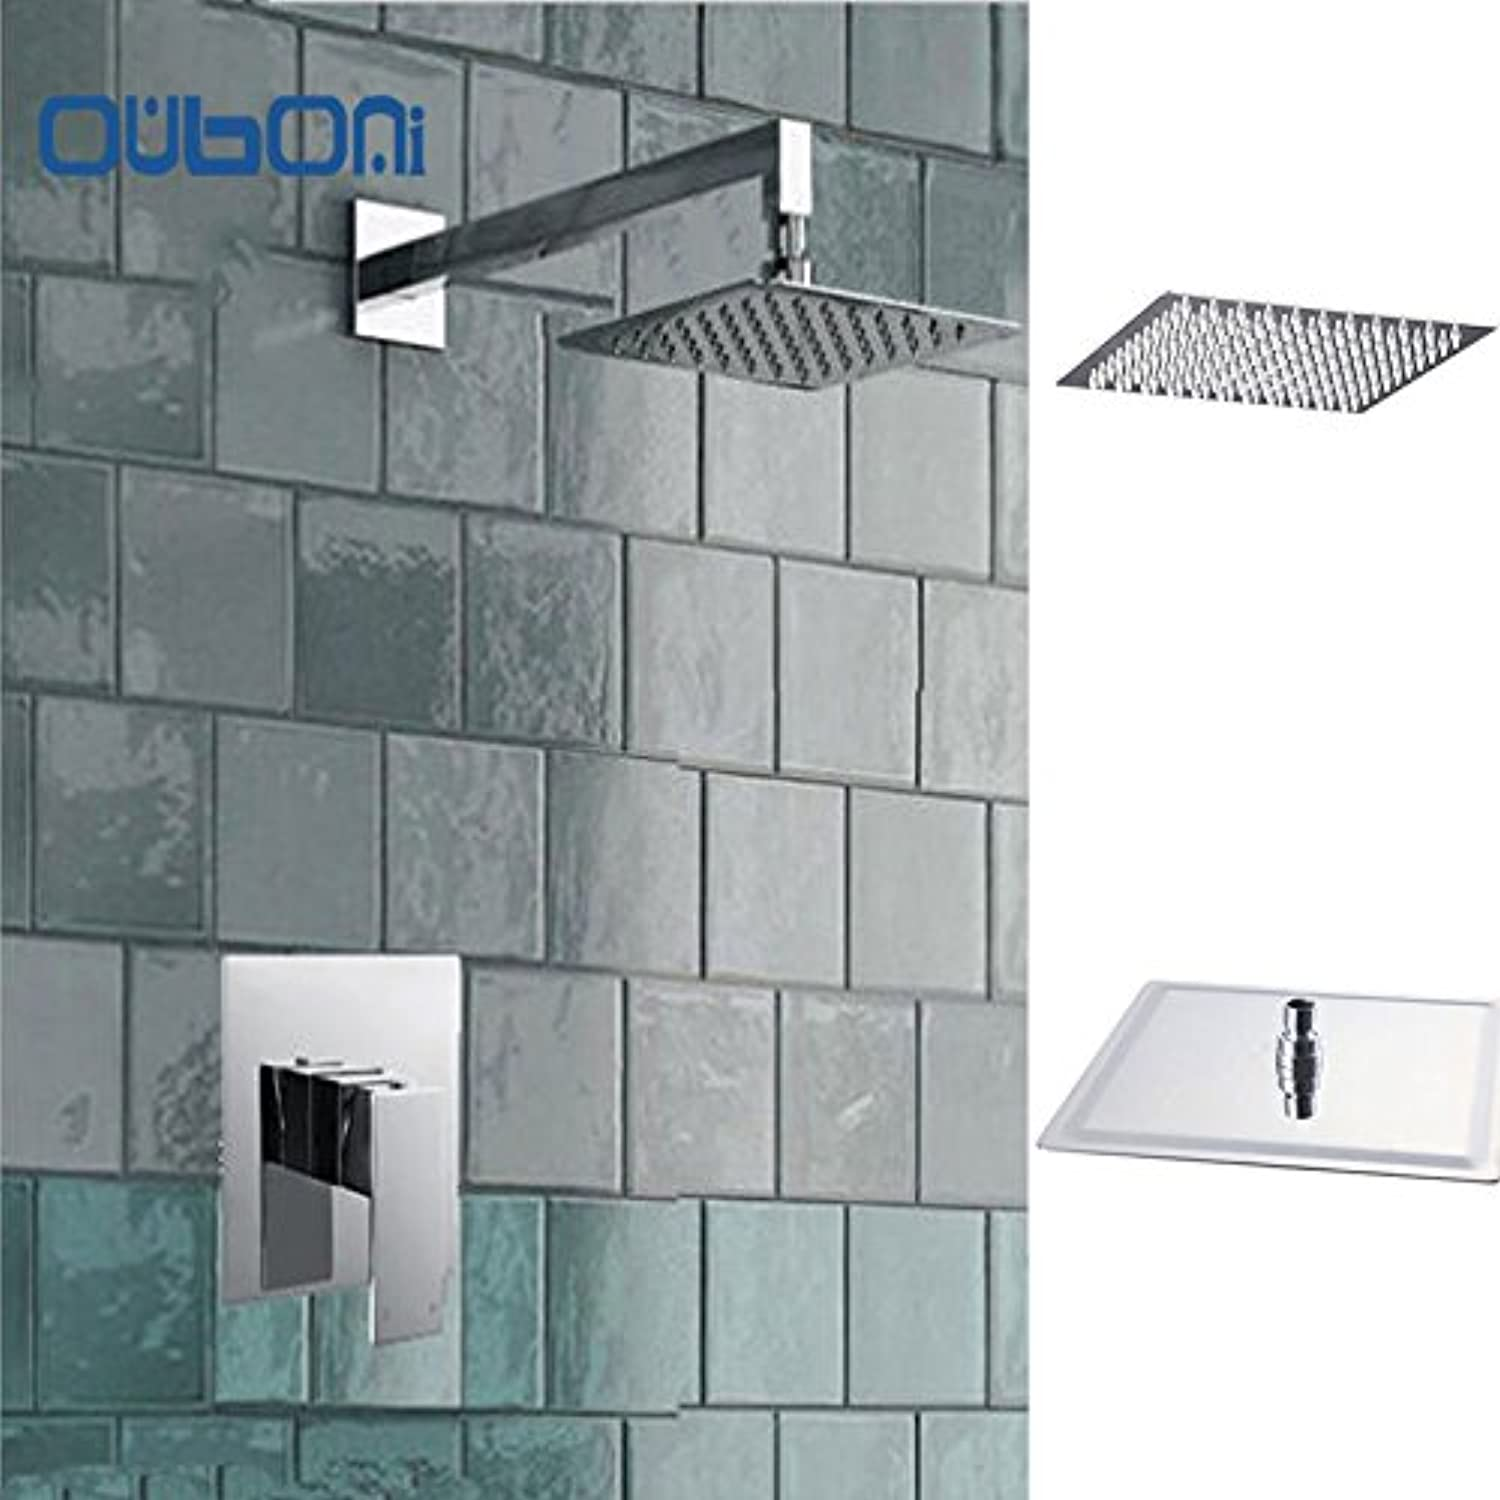 8 Inch Shower Head Luxury Wall Mounted Square Style Brass Waterfall Shower Set Factory Direct New Rainfall Bathroom Shower Kit